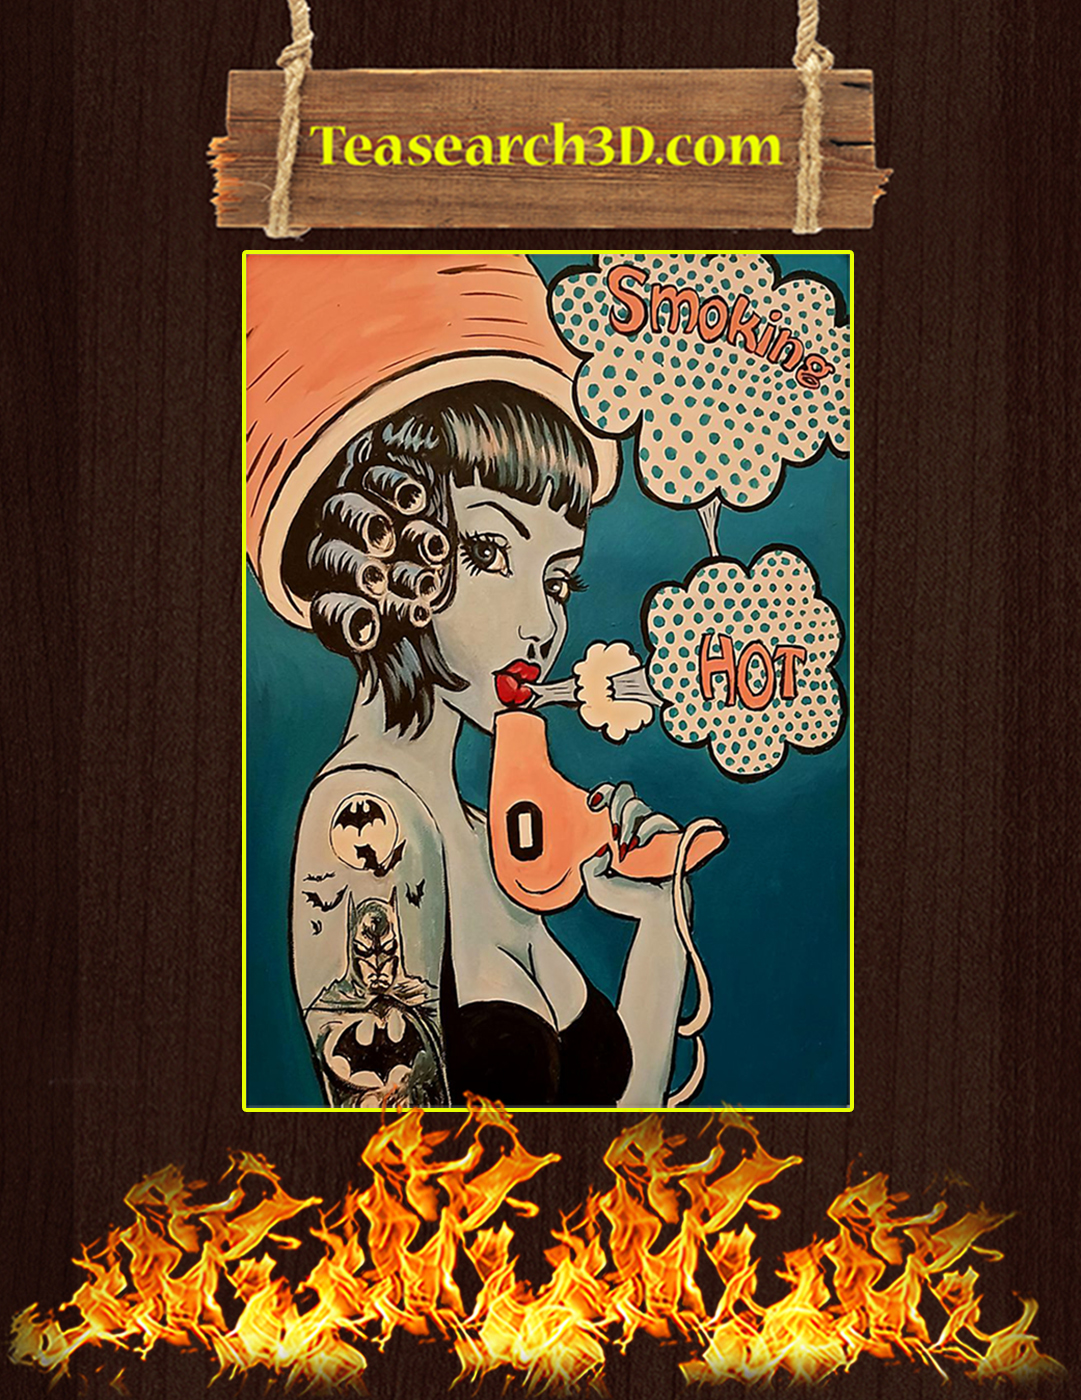 Vintage retro hairdresser smoking hot poster A2